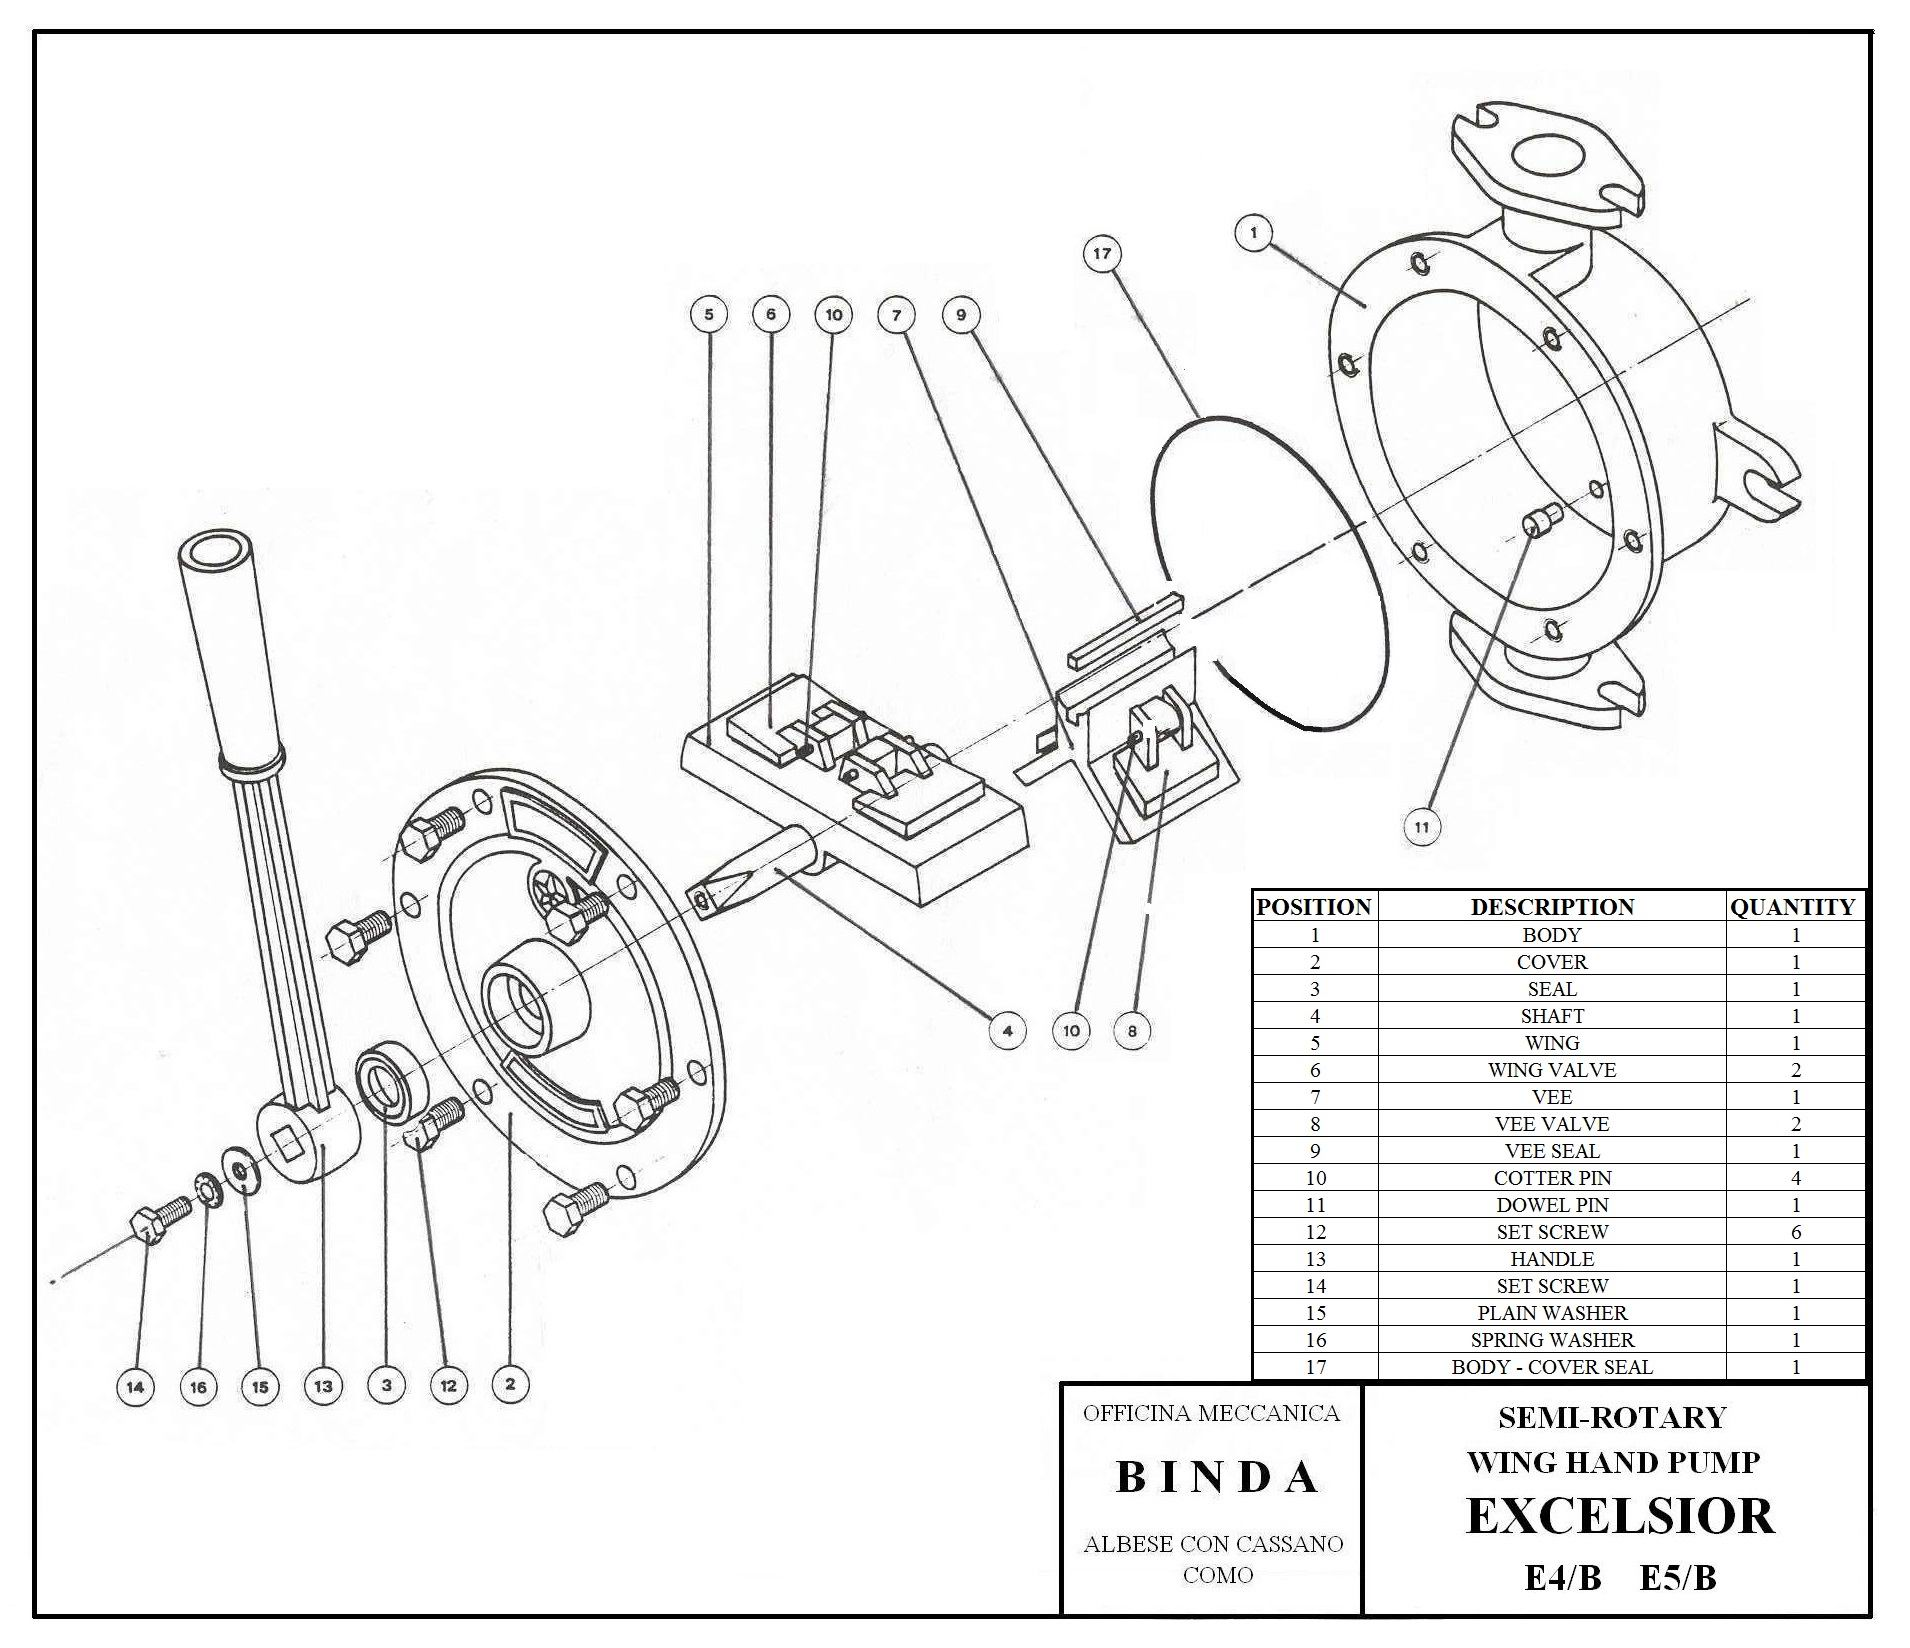 Binda Excelsior G Semi Rotary Hand Pump Amp Manual Pump